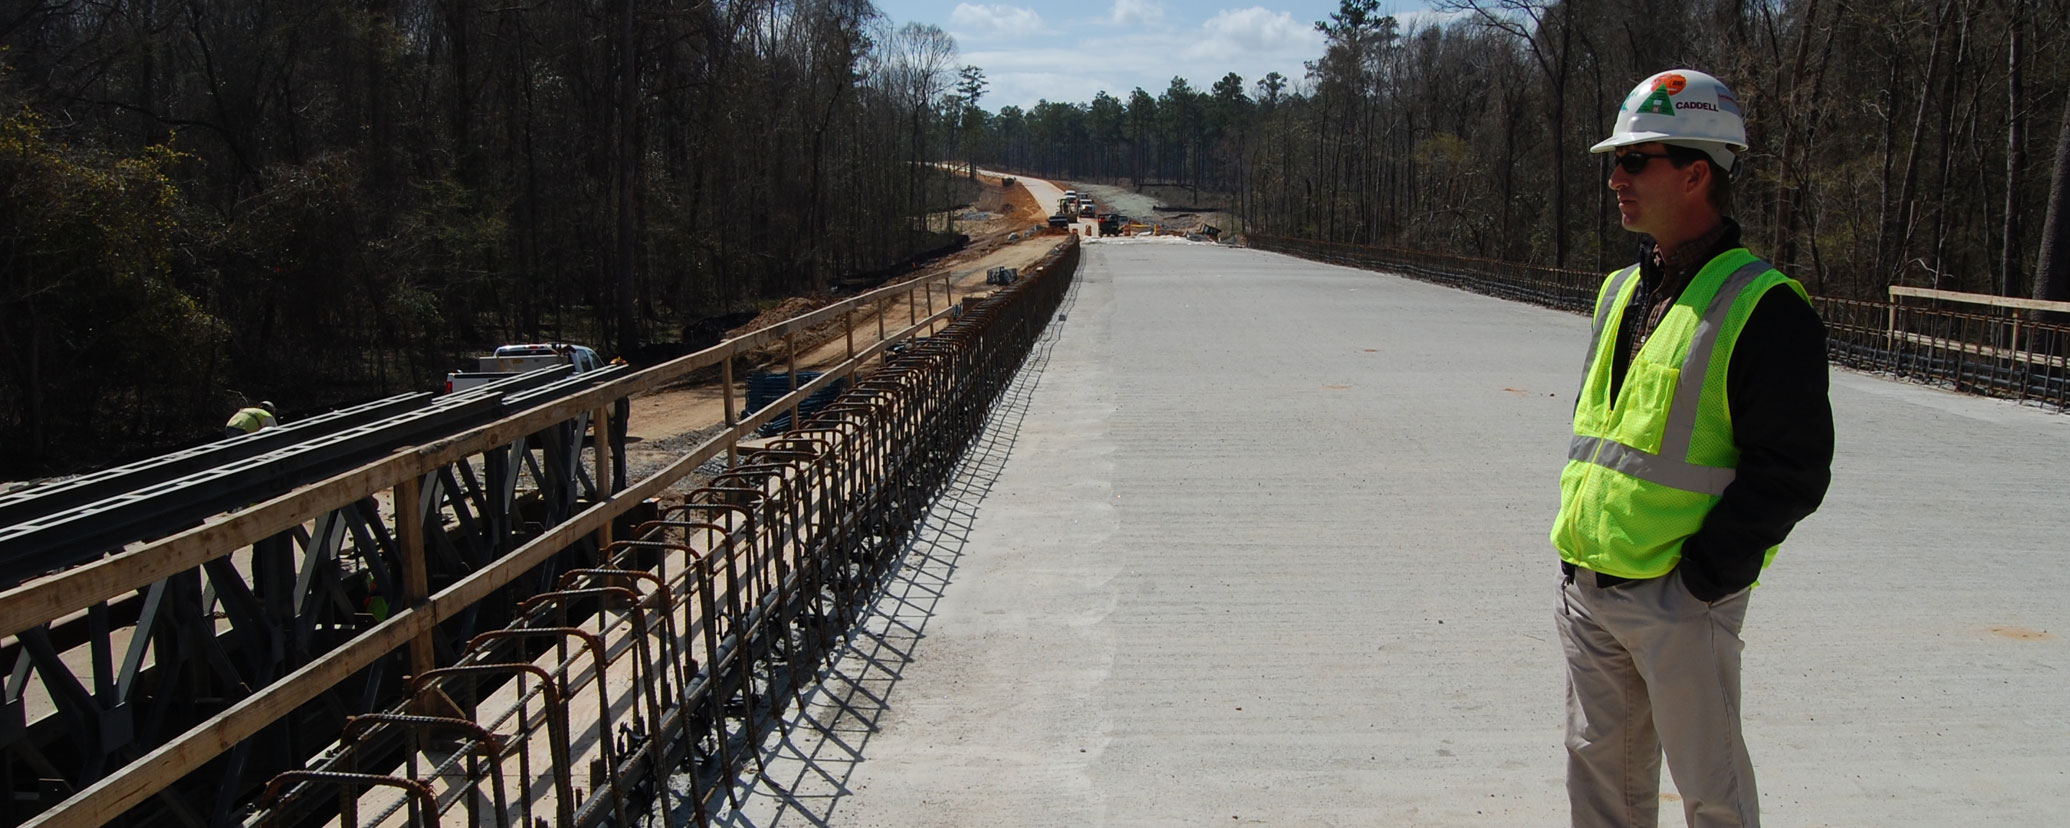 Caddell Construction Project - Training Roads & Bridges Phase C Fort Benning, GA